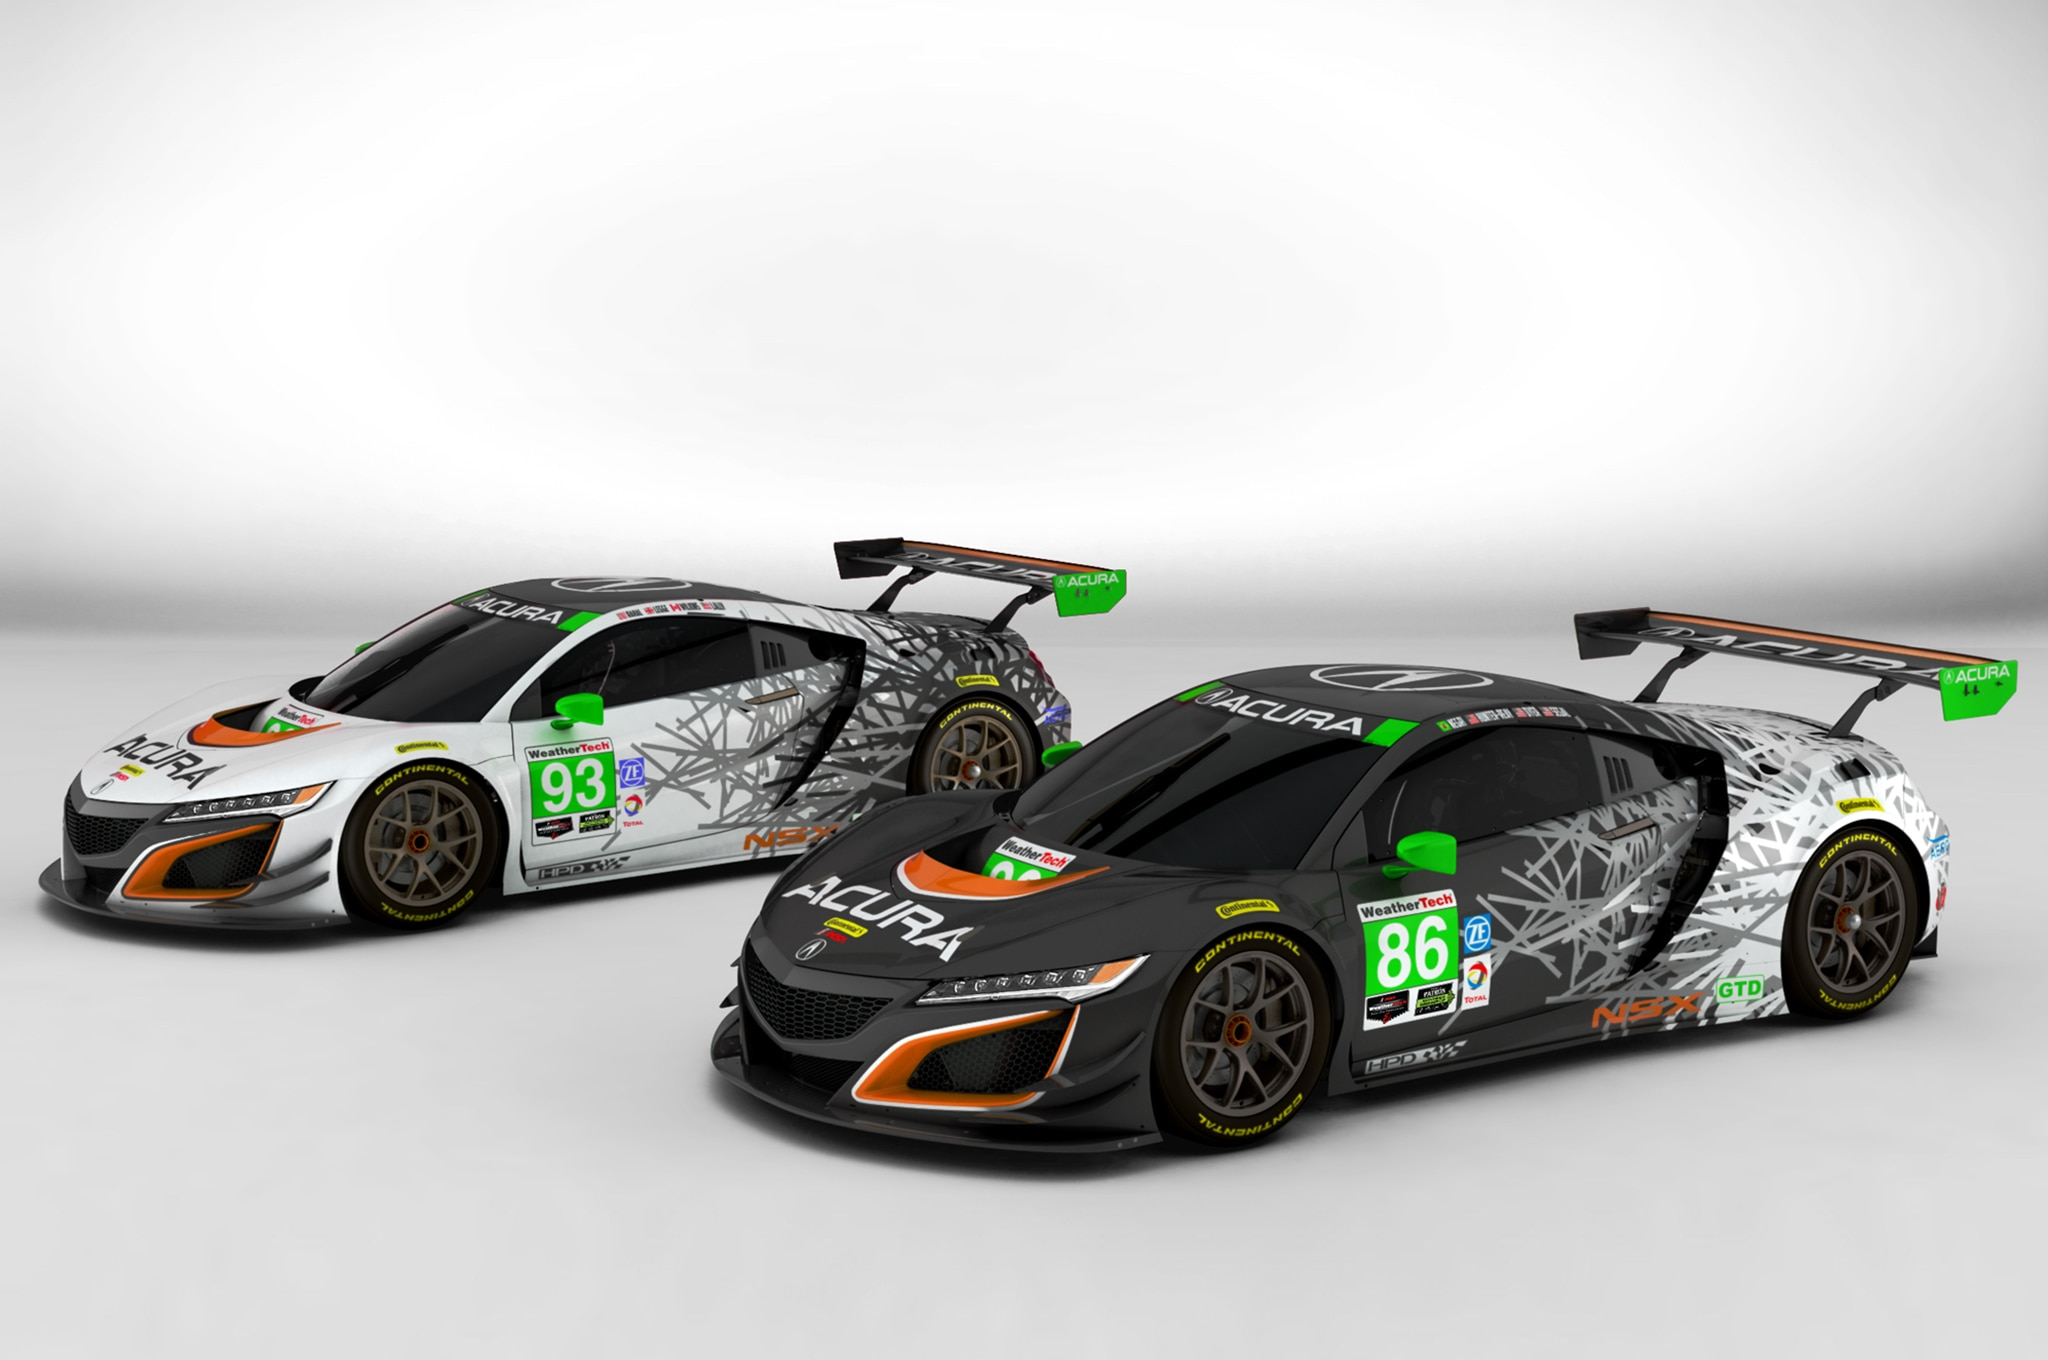 13 Things We Learned About the Acura NSX GT3 Race Car | Automobile Magazine